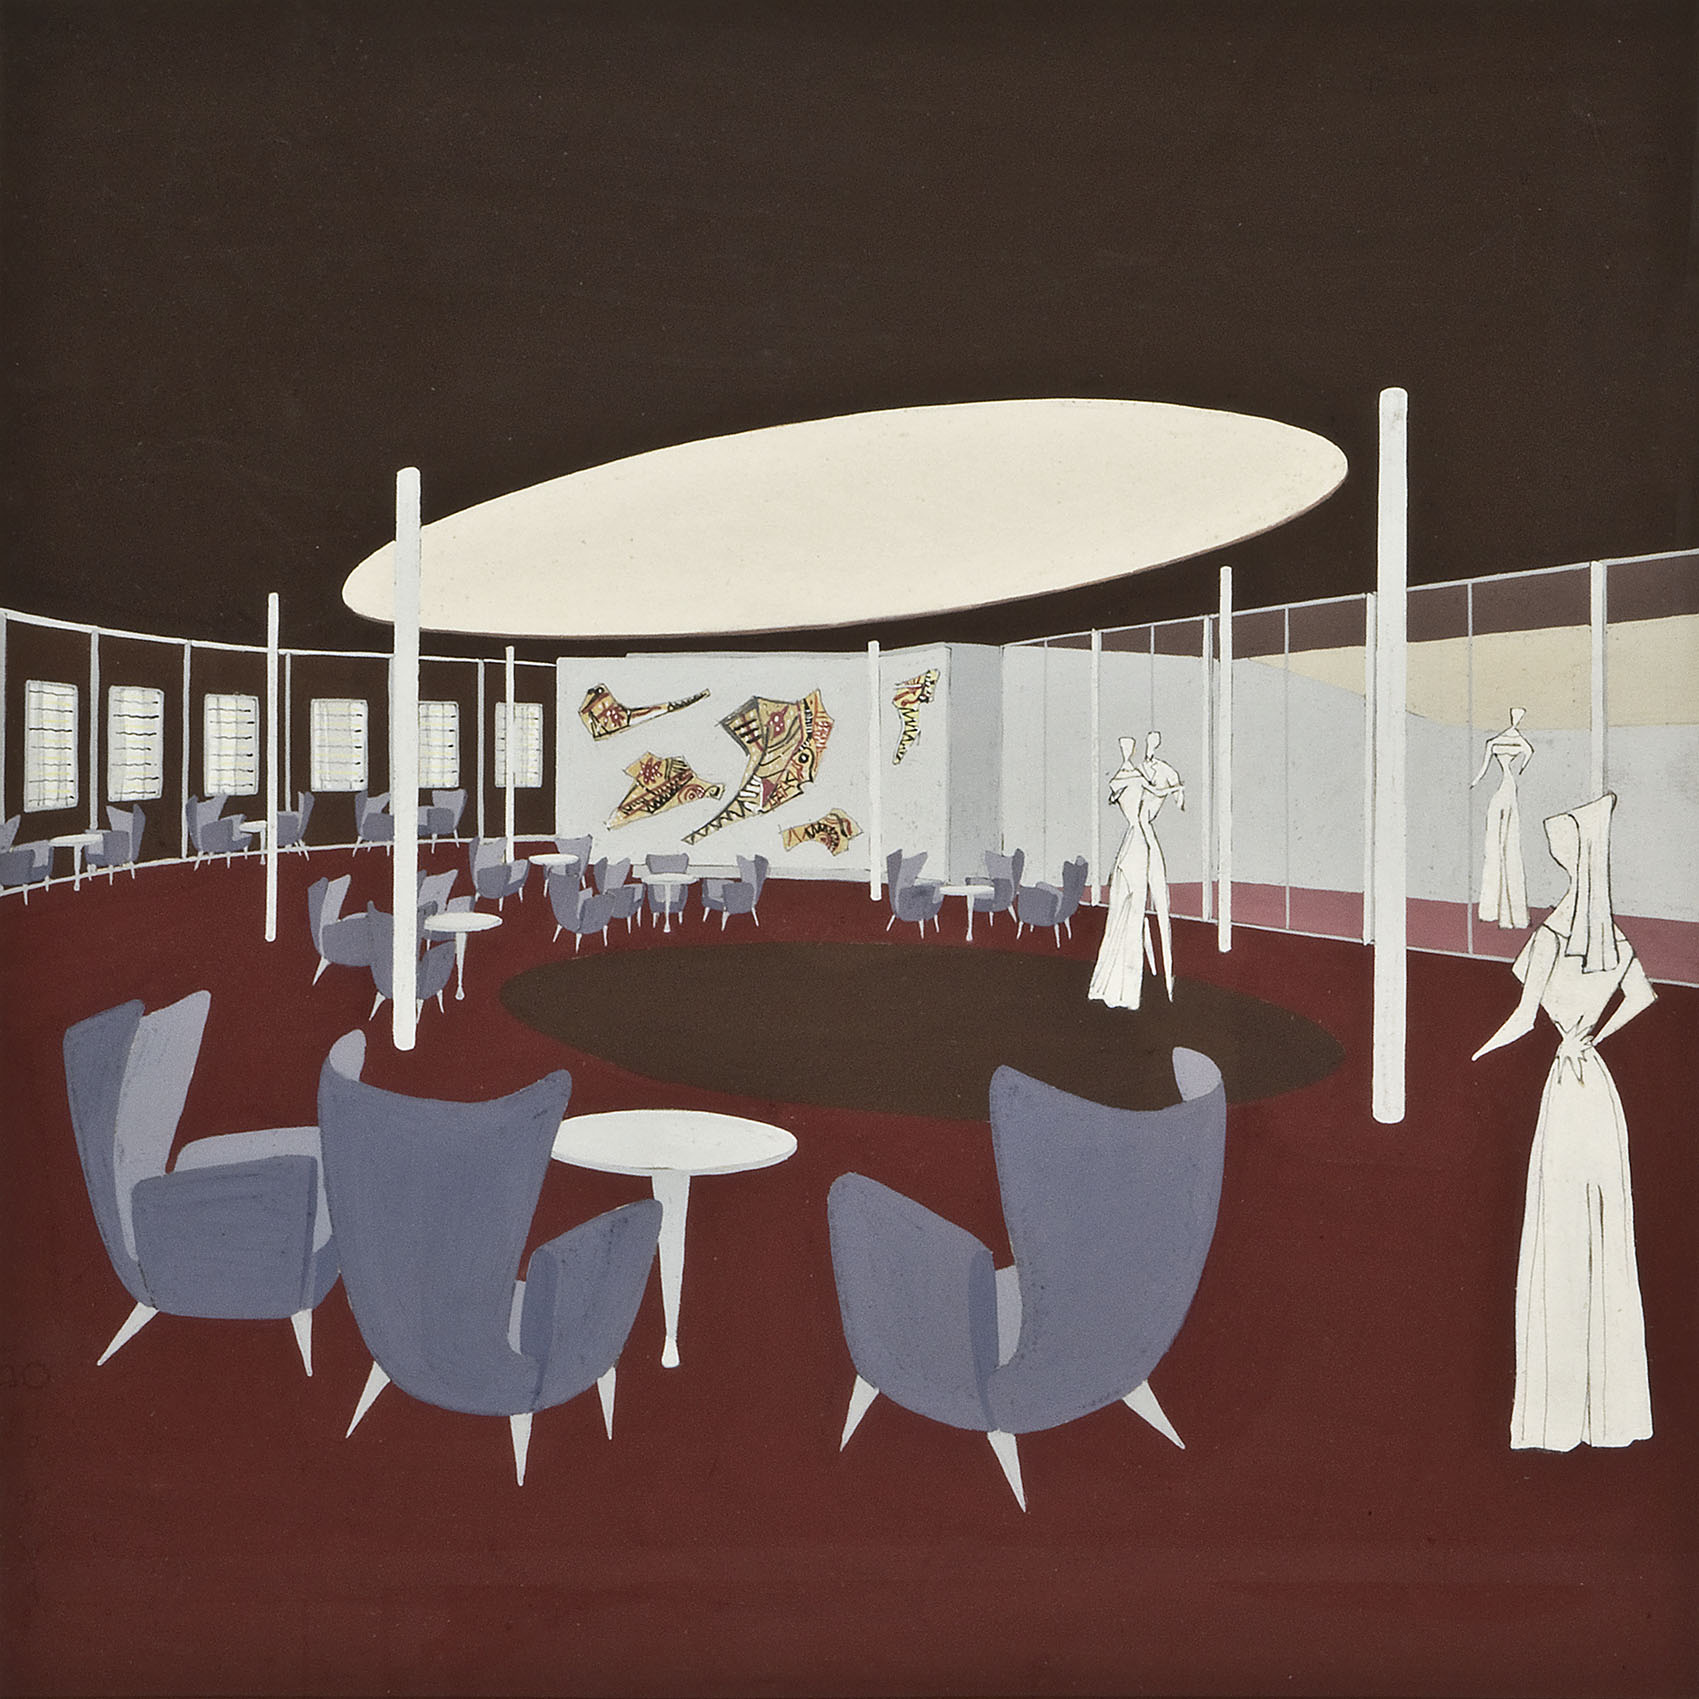 M/n Australia, bozzetto per la veranda bar di prima classe MS Australia, preparatory sketch for the first-class veranda bar 1950